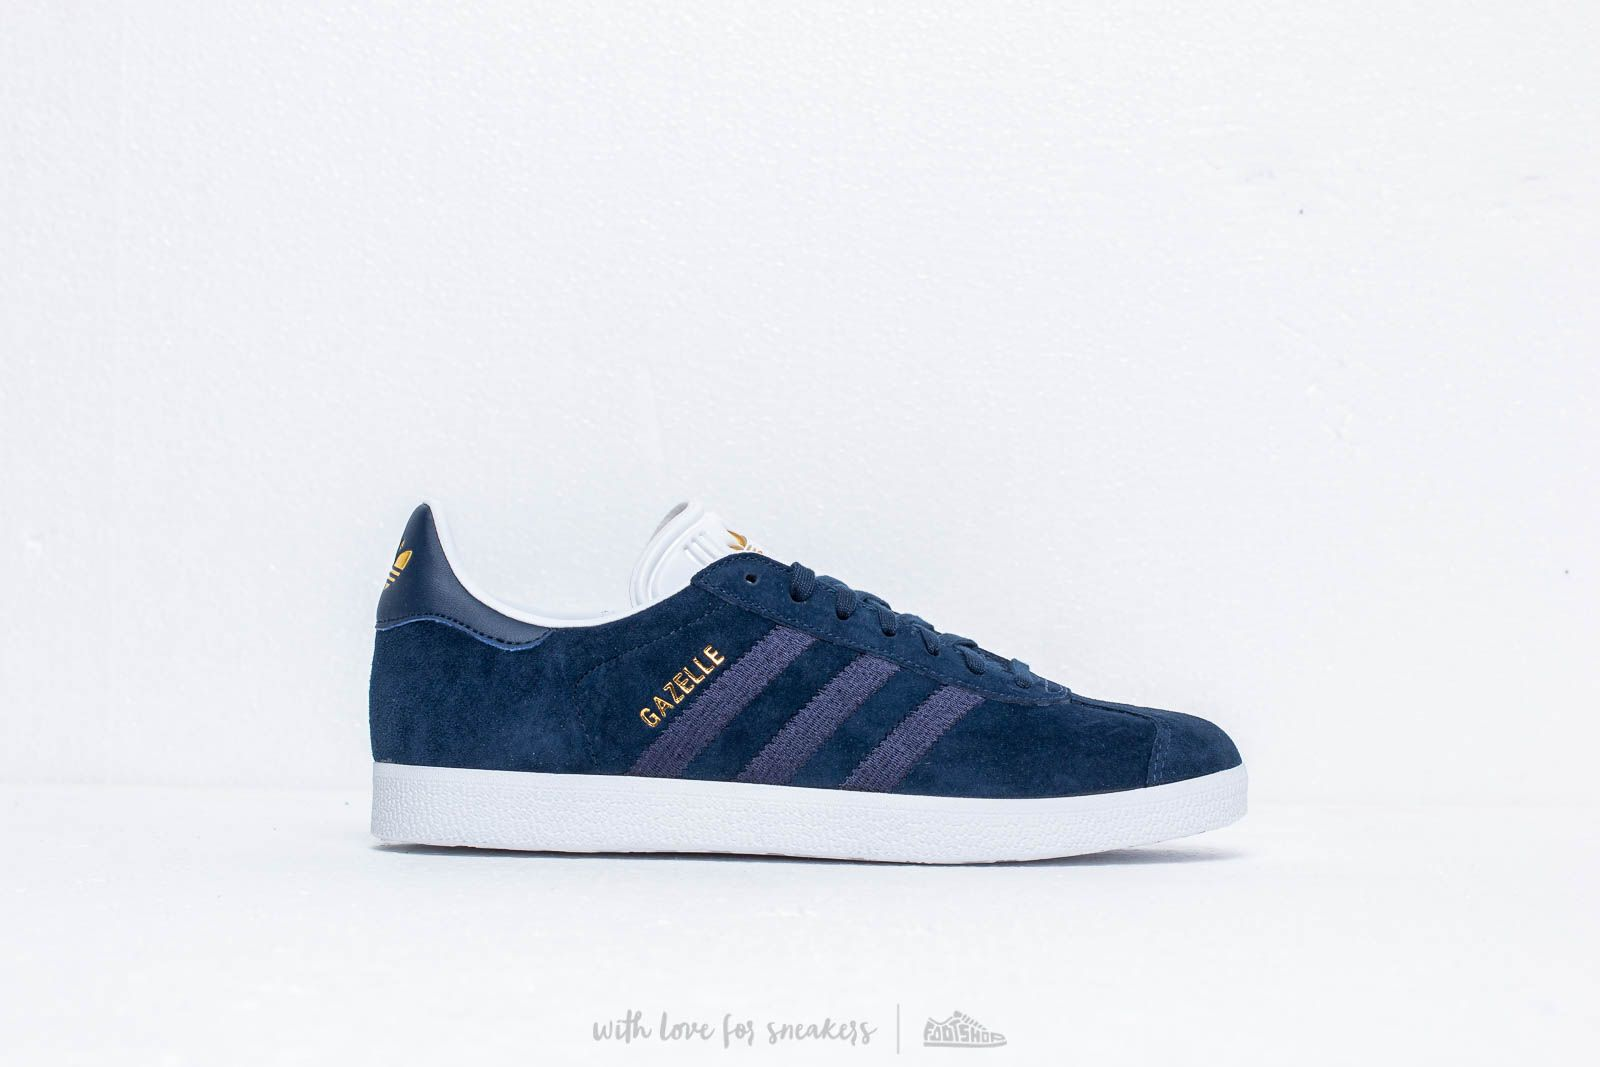 hot sale online 4b079 94c9f adidas Gazelle W Conavy Conavy Ftw White at a great price 92 € buy